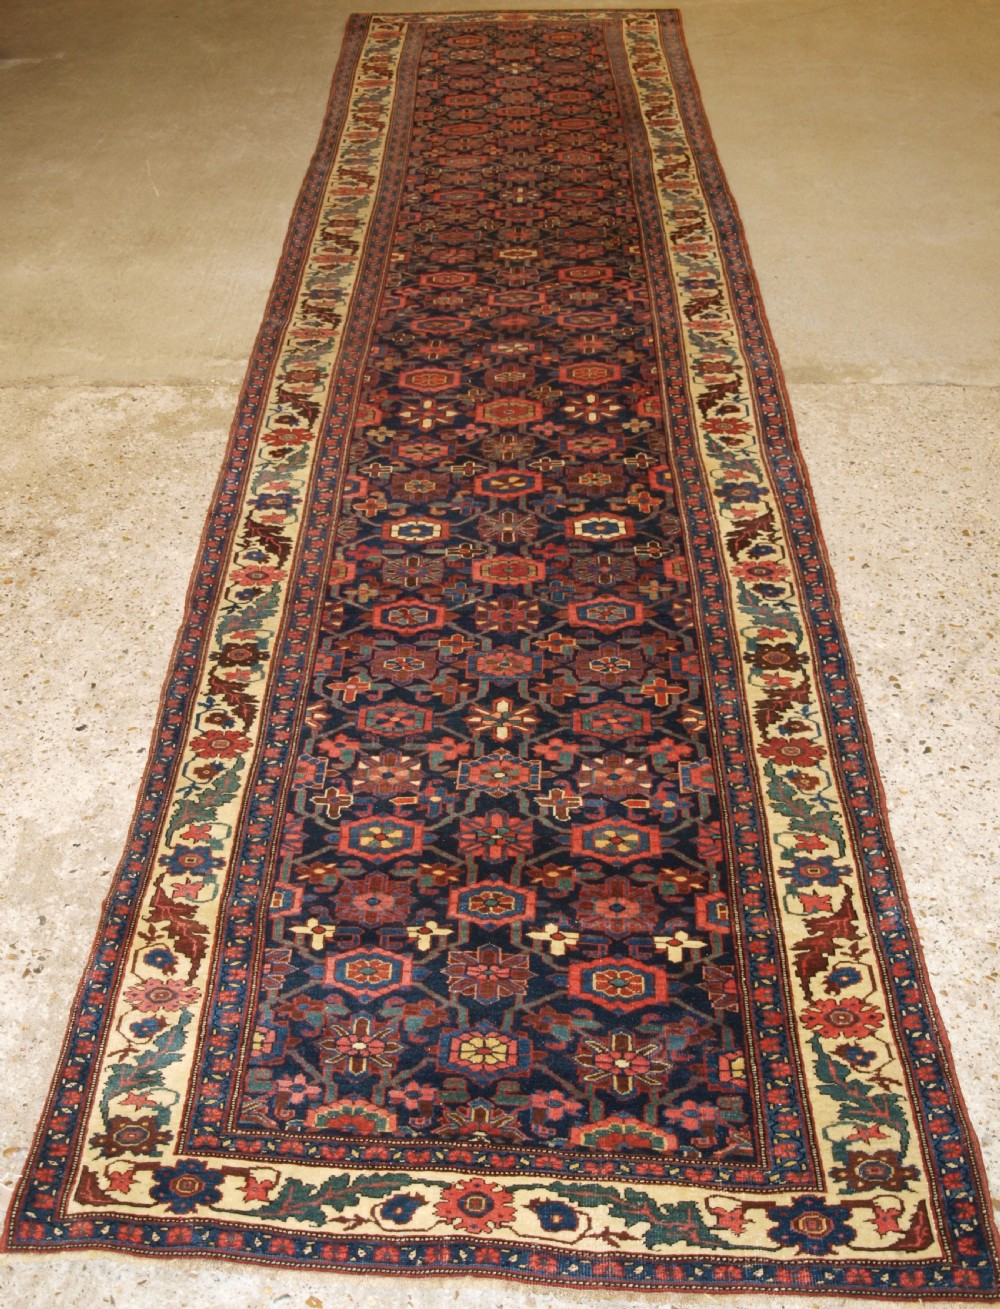 antique persian bijar runner with mina khani design beautiful border circa 1880